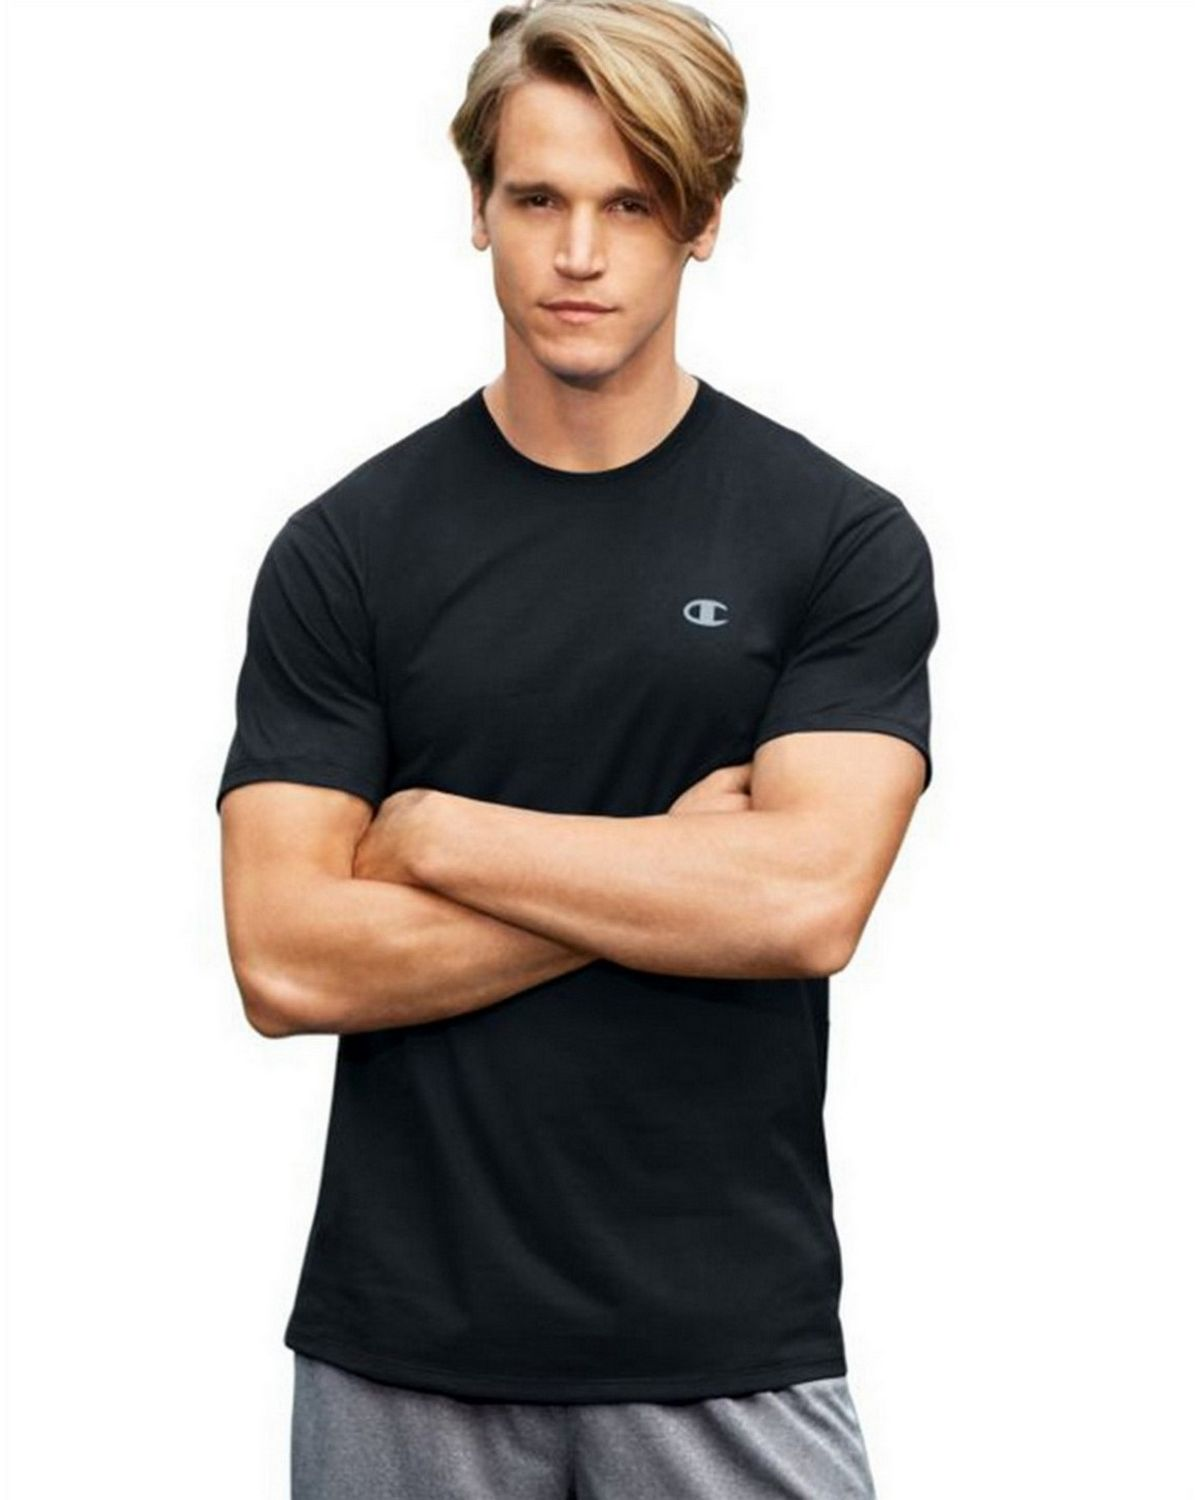 Champion T0351 Vapor Mens Cotton Tee - Black - XL T0351